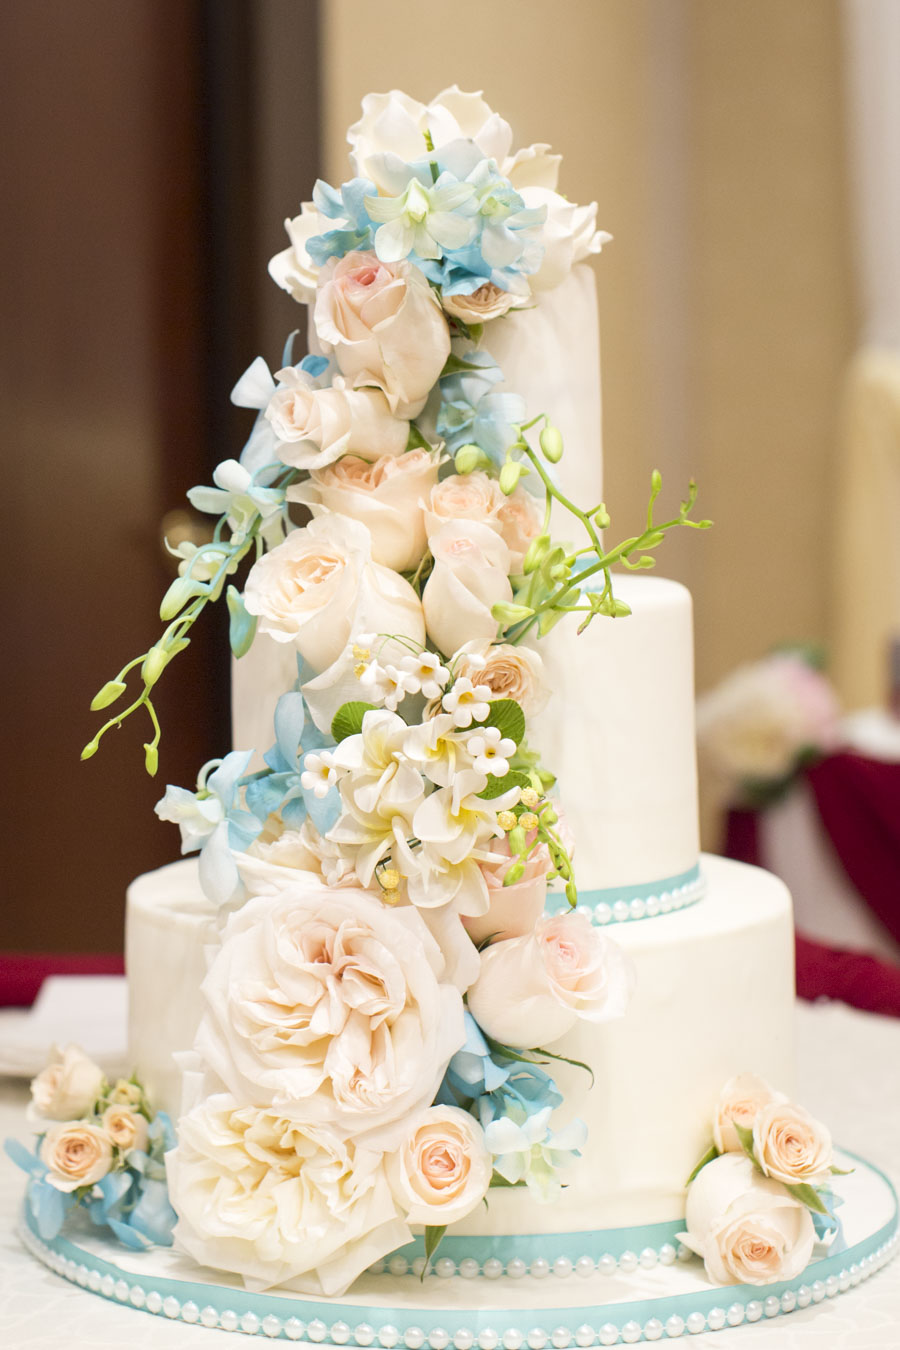 White wedding with blue and pink sugar flowers